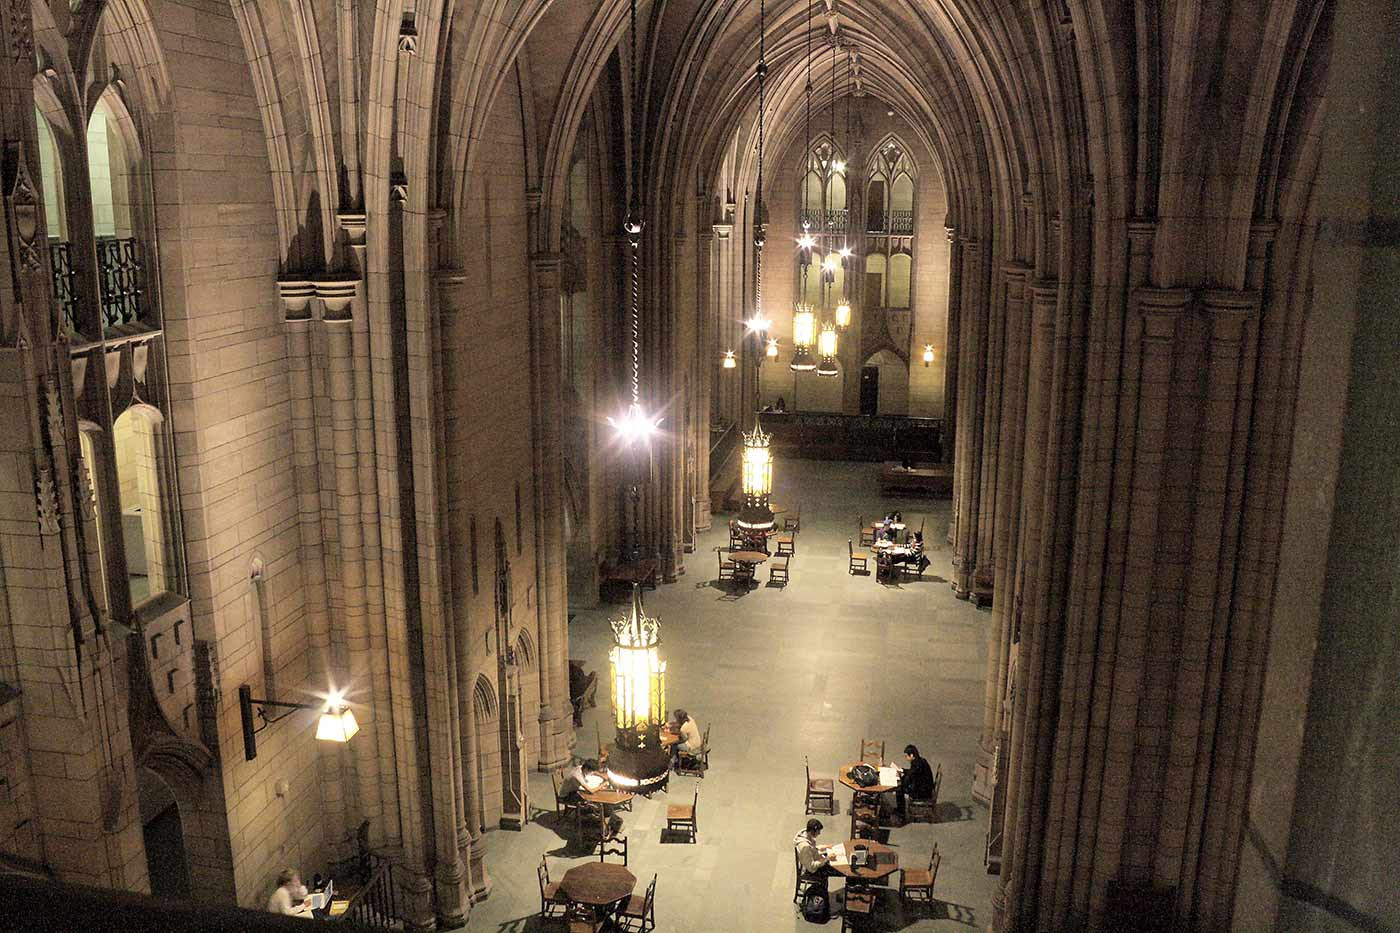 Cathedral of Learning, Commons Room.